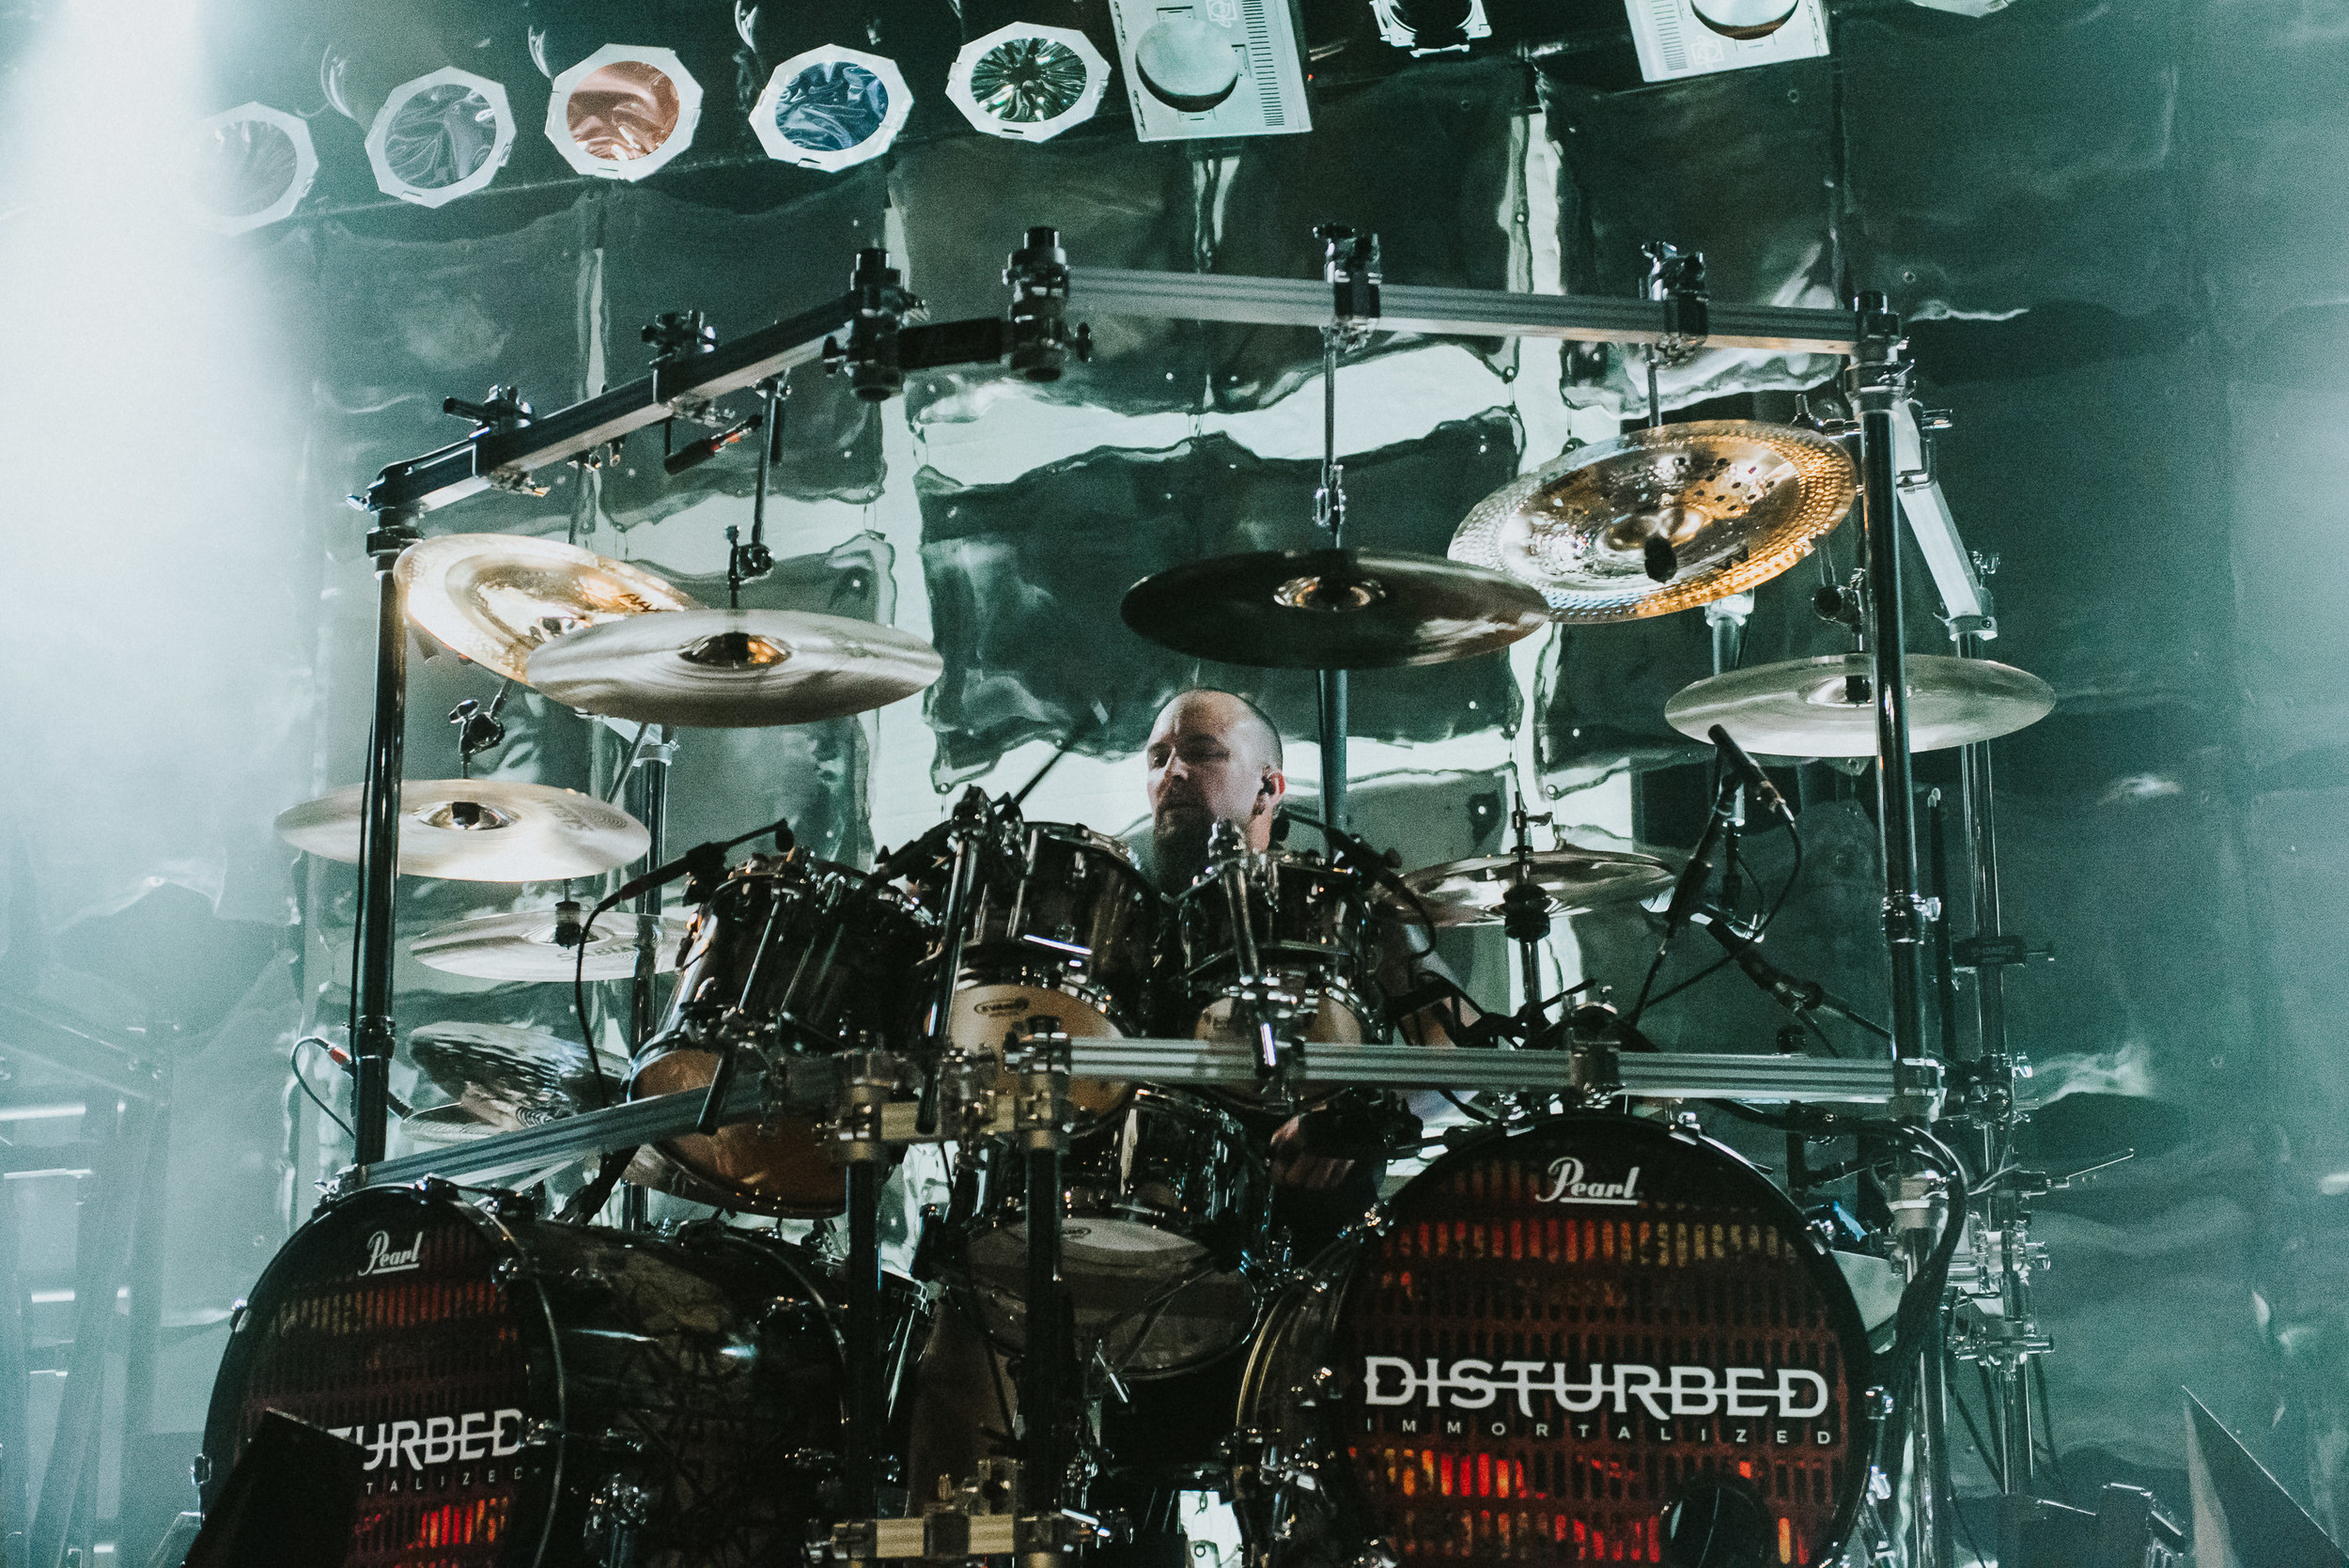 1_Disturbed_Commodore_Ballroom_Timothy-Nguyen_11March2016 (19 of 20).jpg